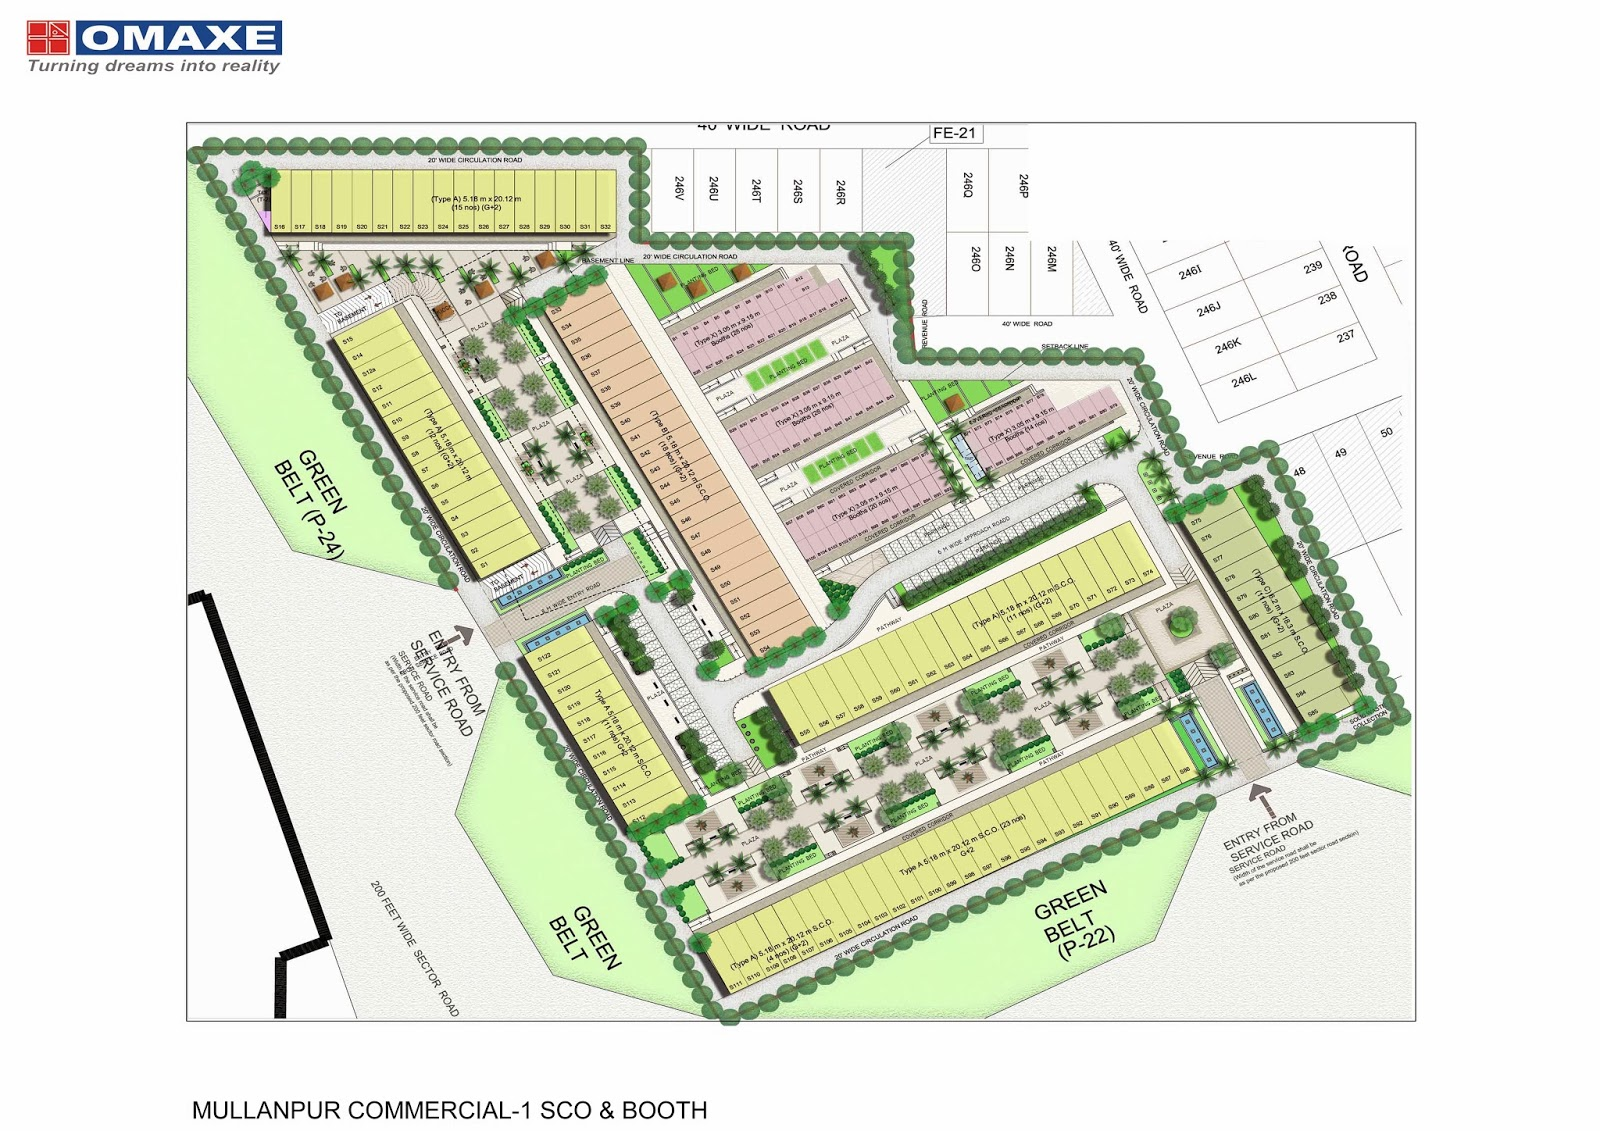 omaxe commercial property layout map mullanpur